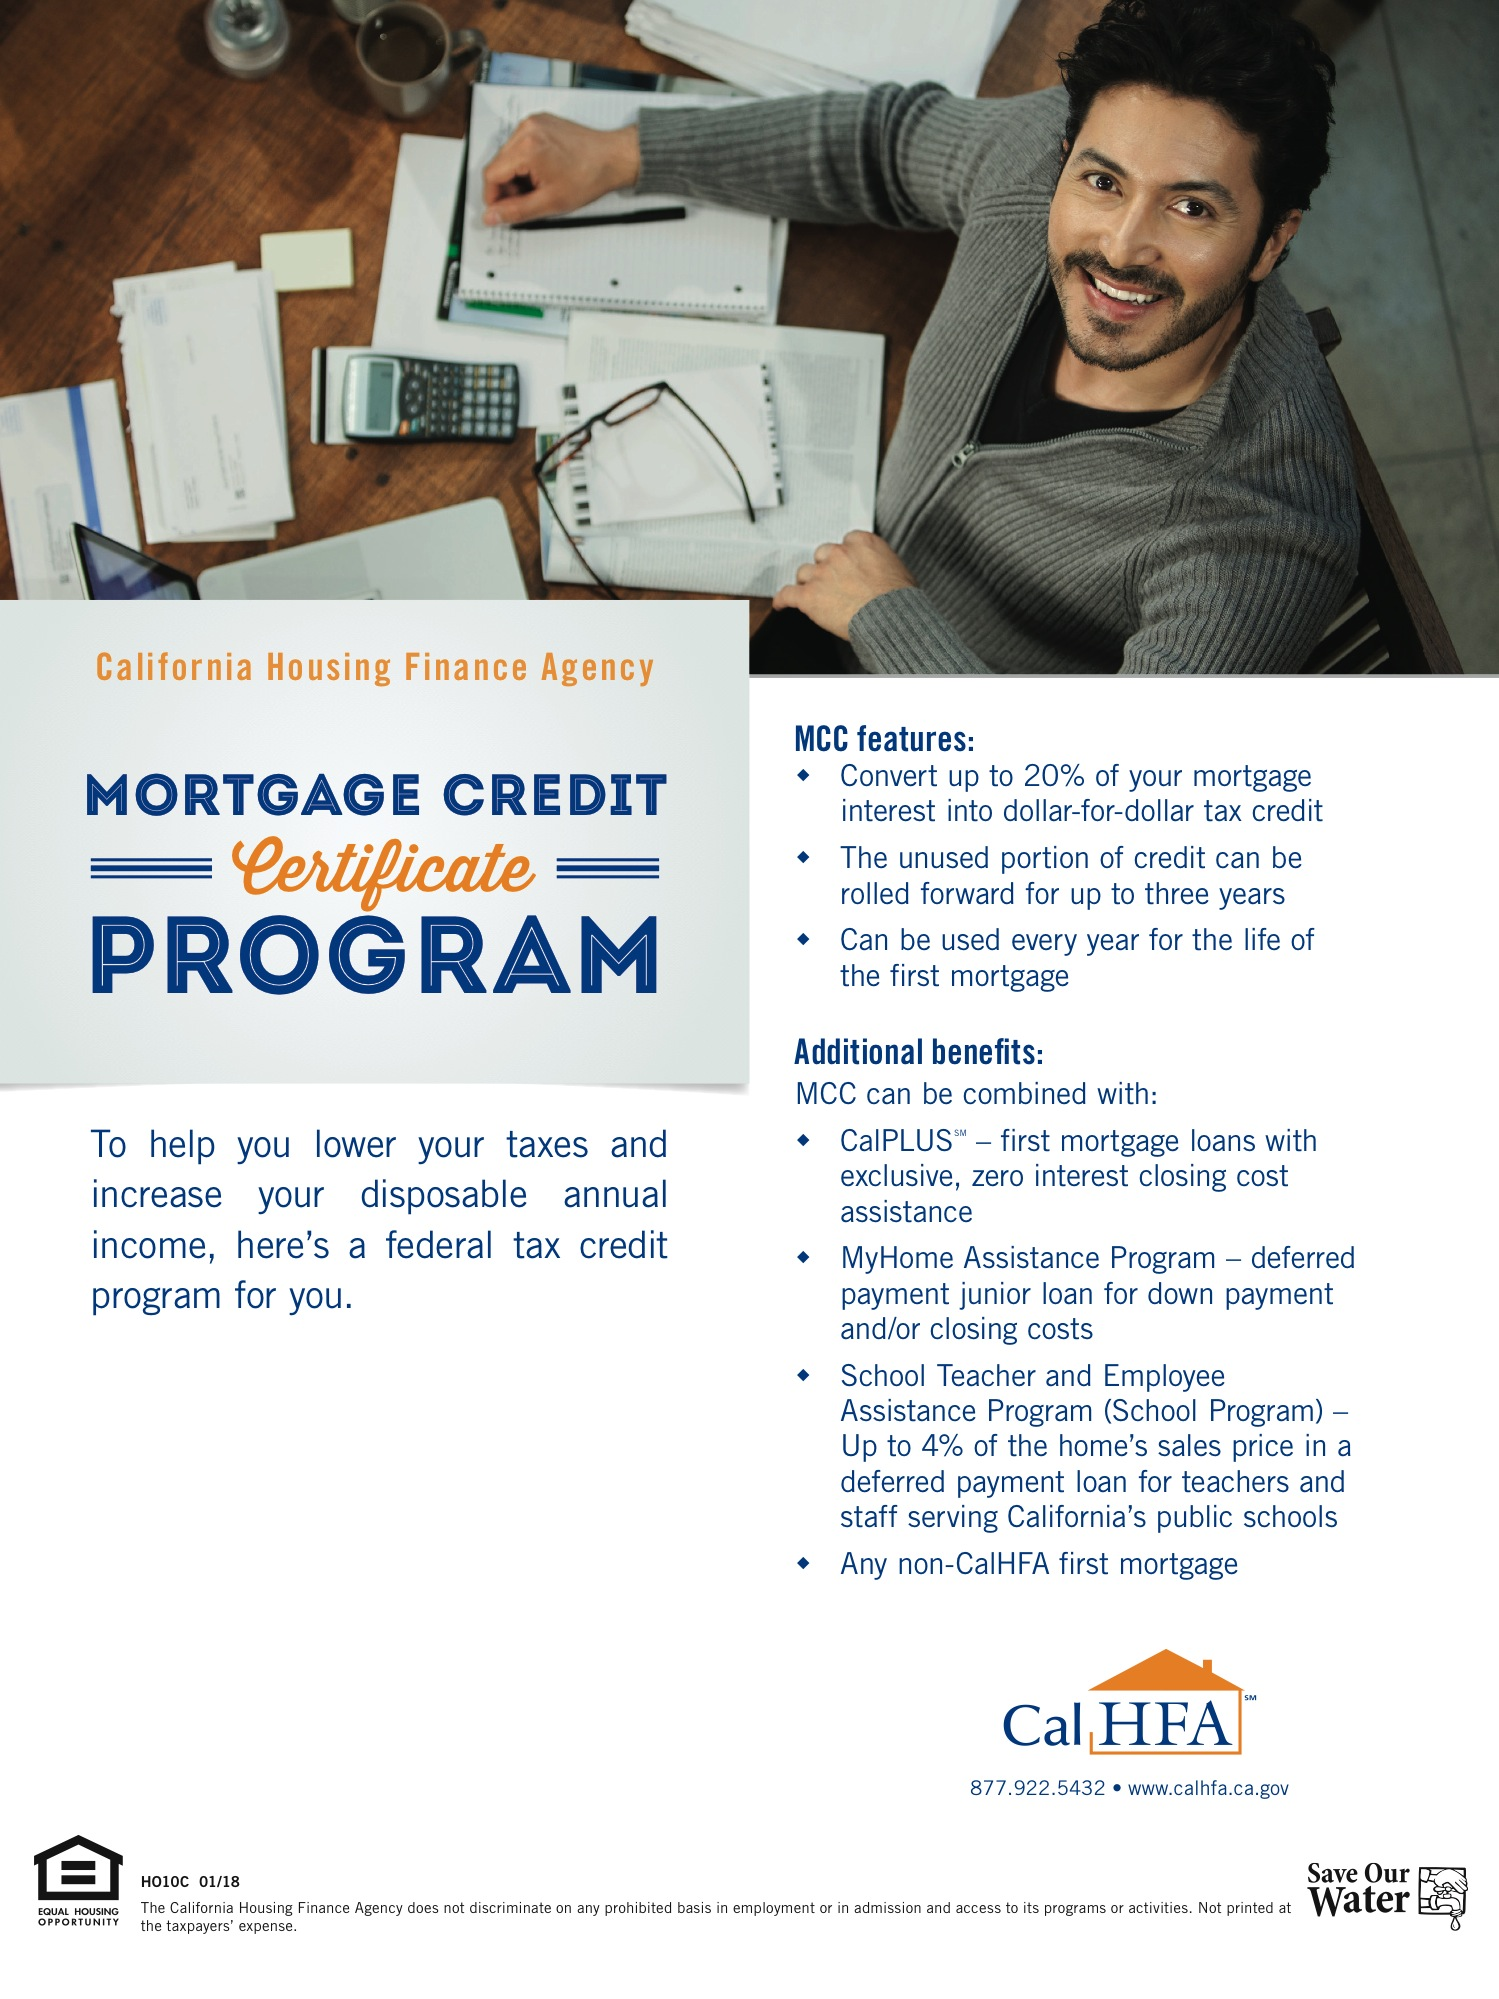 Mortgage Credit Certificate Program - Convert up to 20% of your mortgage interest into dollar-for-dollar tax credit...